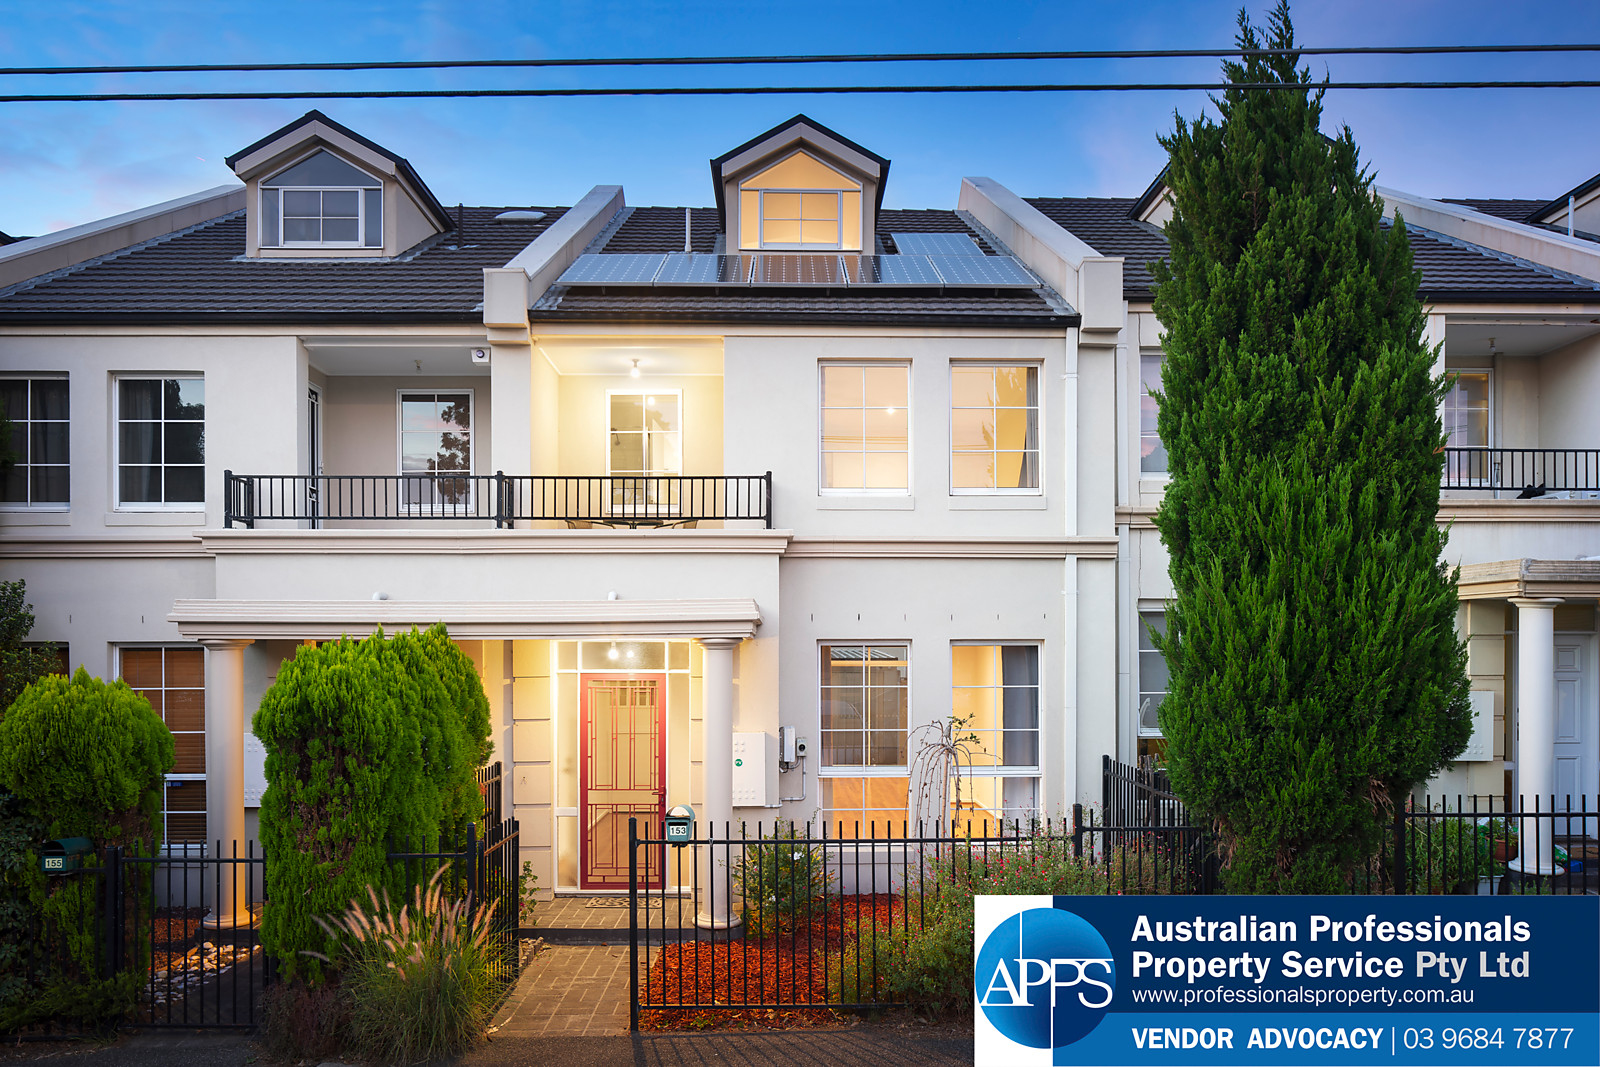 153 Ramsden Street, Clifton Hill, VIC, 3068 image 1